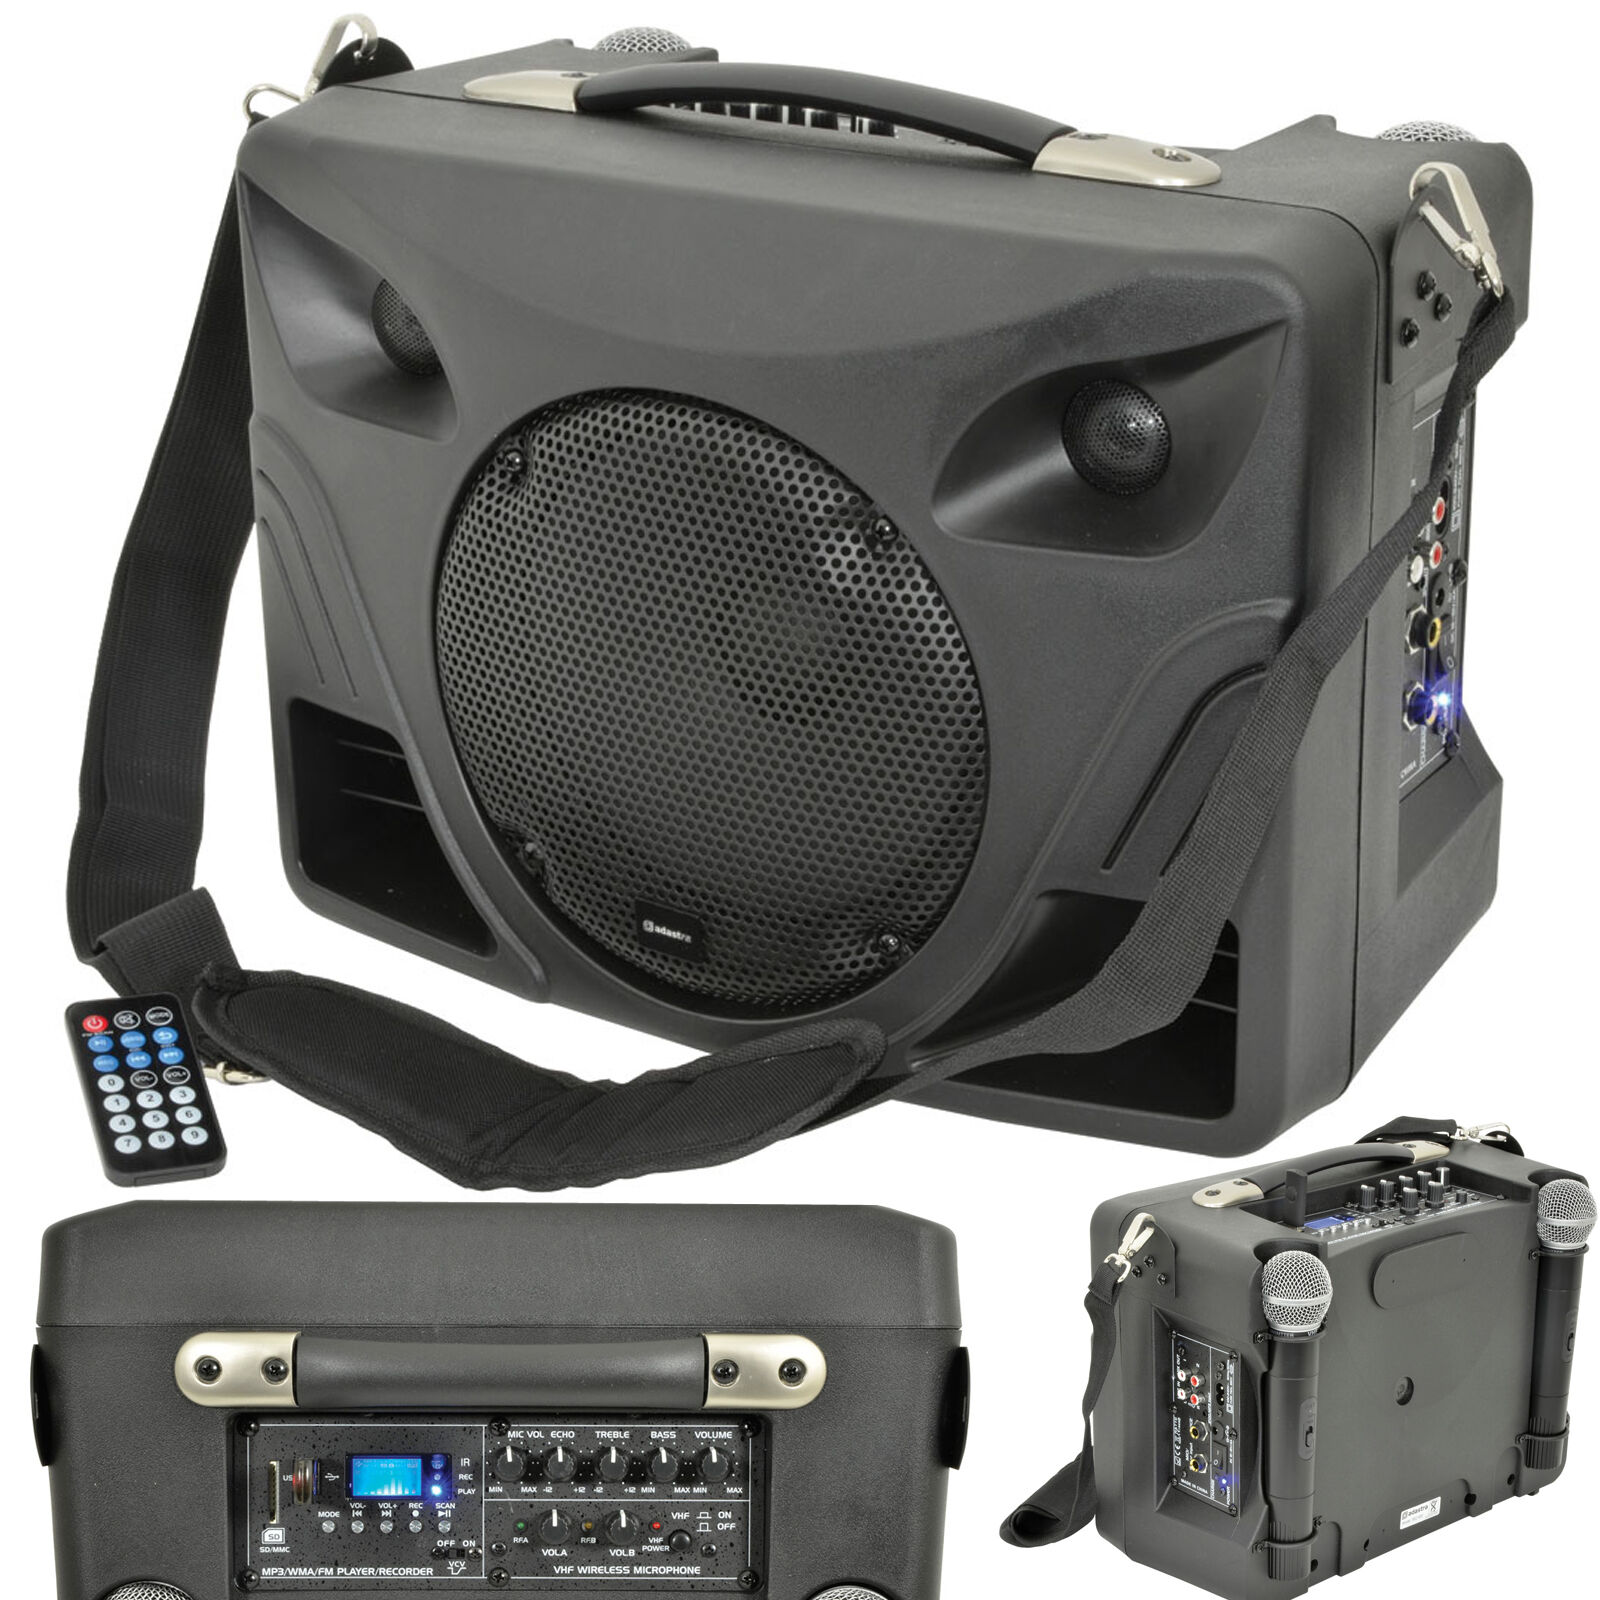 50w Portable Outdoor Pa Speaker System Mobile Wireless Microphone Mic Active Music 1 Of 2free Shipping